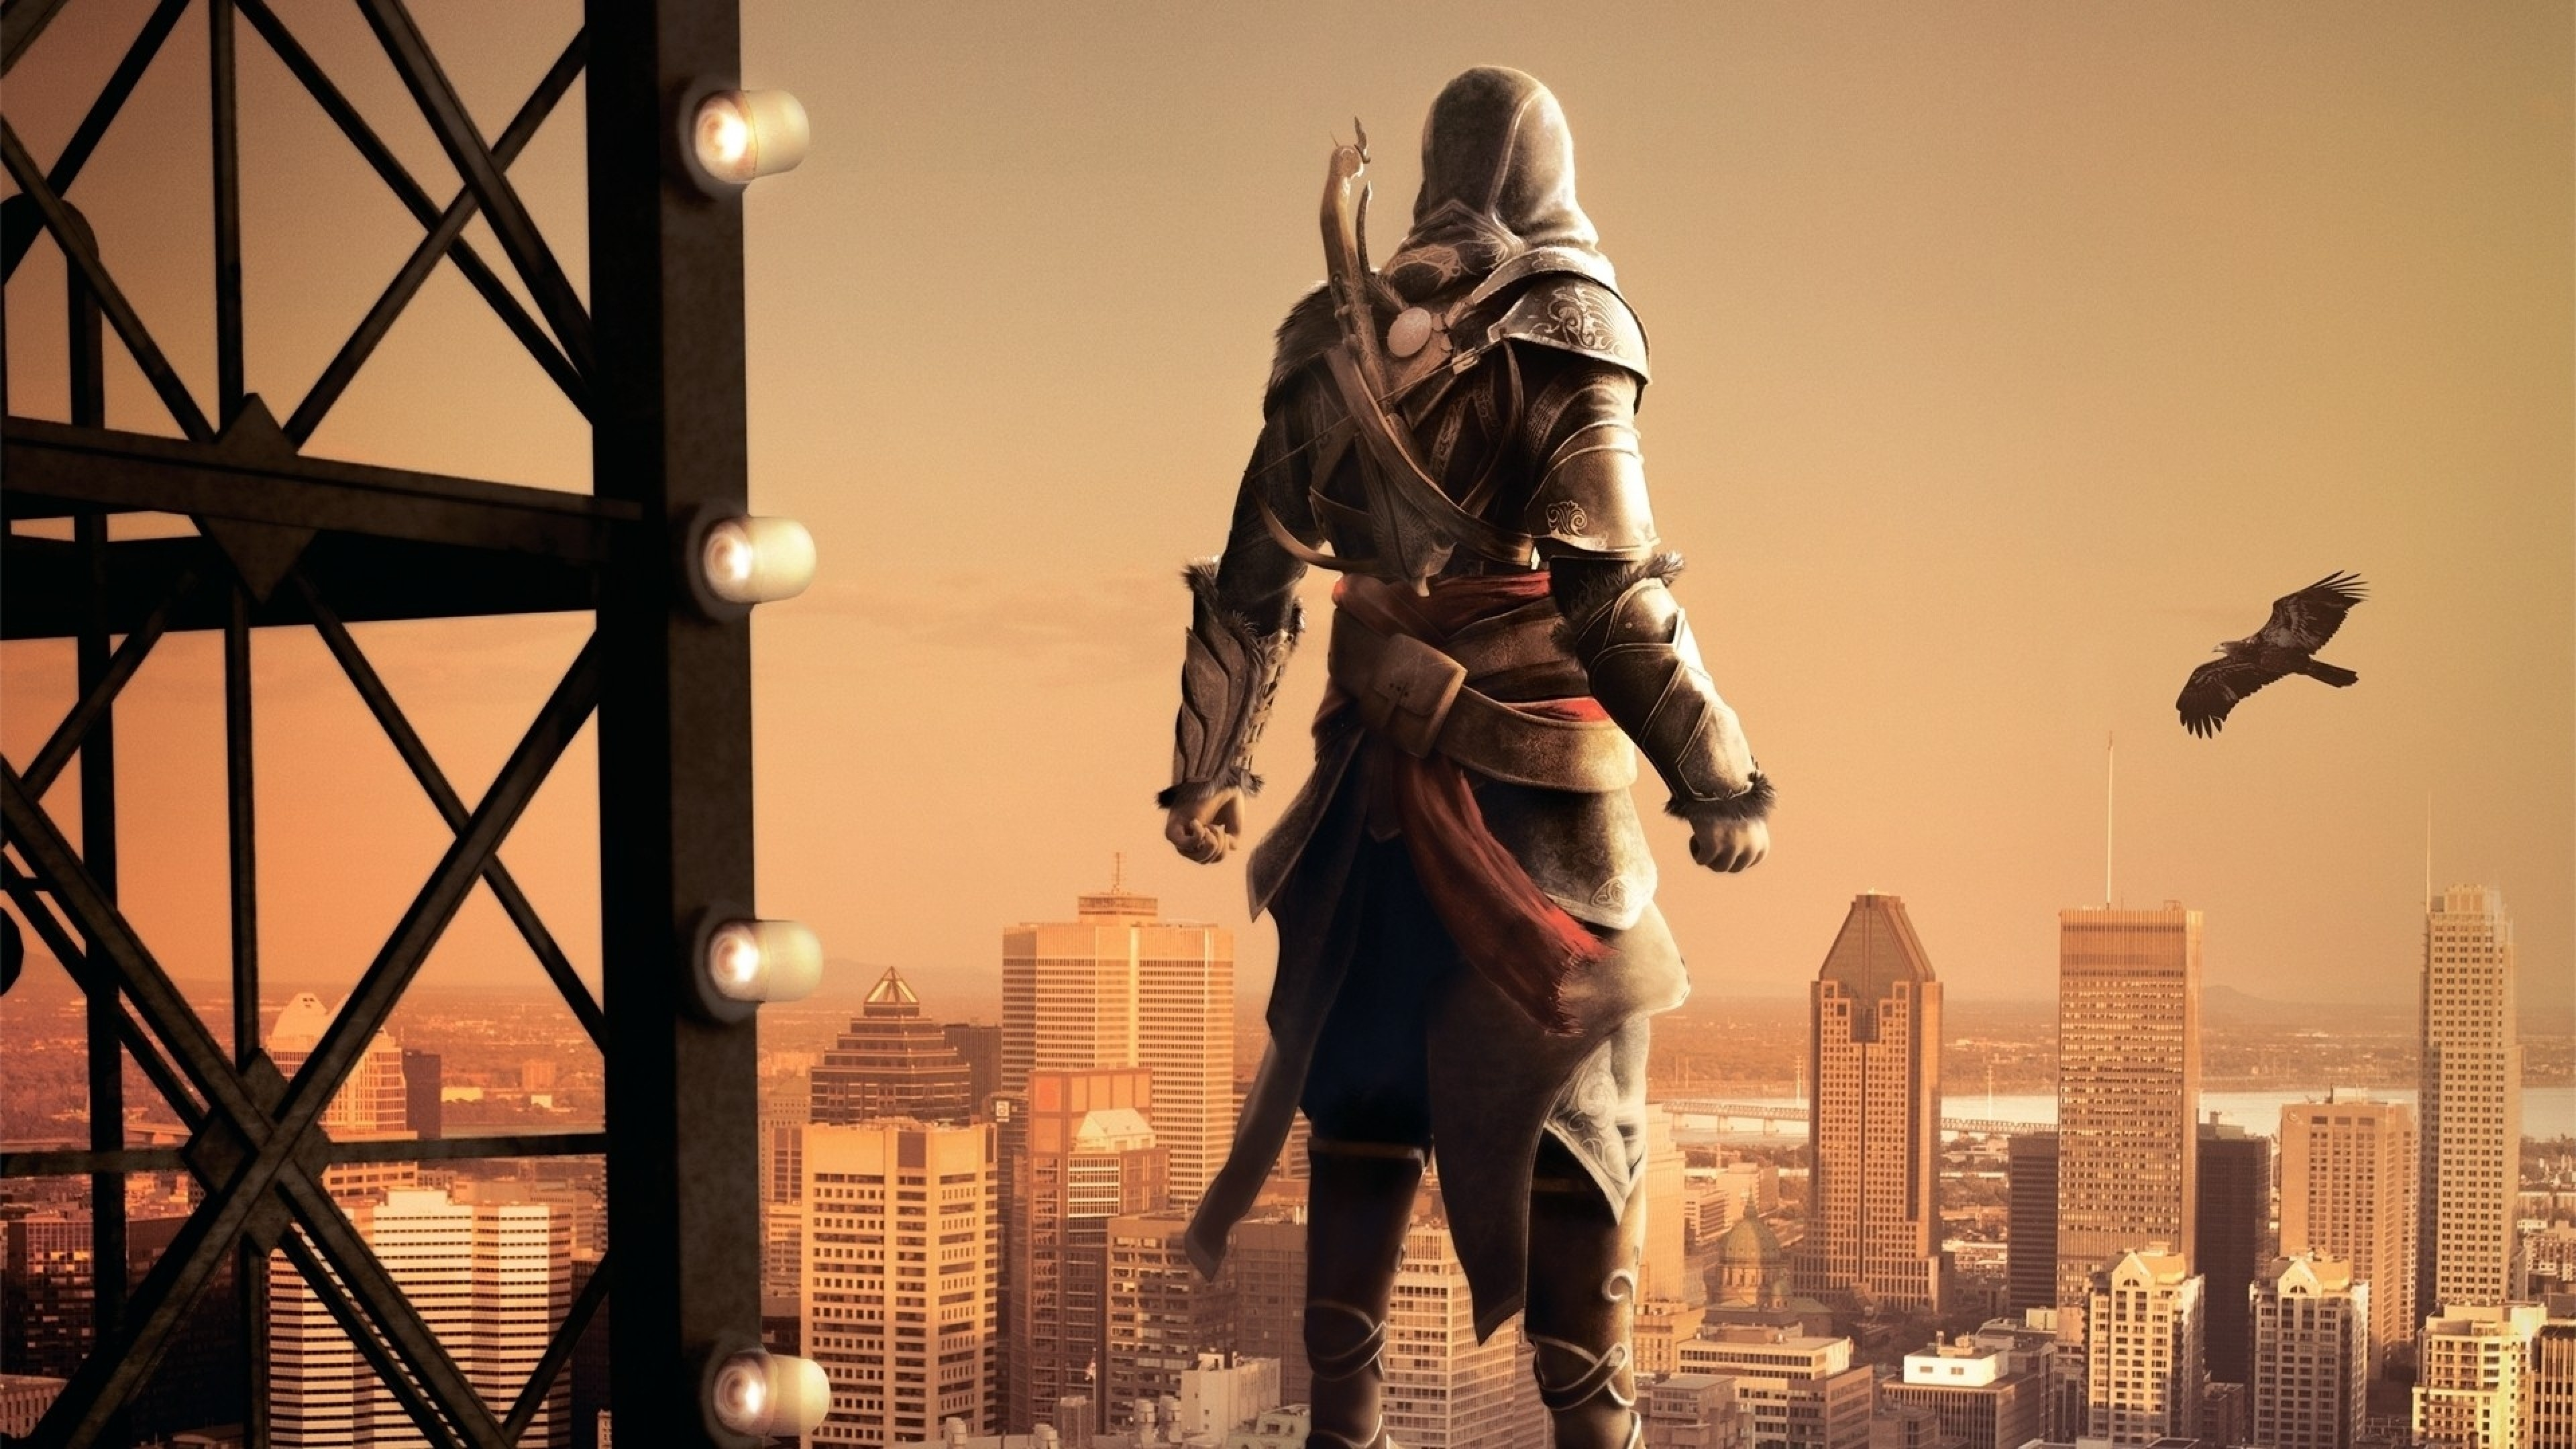 Assassin Creed Ezio Hd Games 4k Wallpapers Images Backgrounds Photos And Pictures